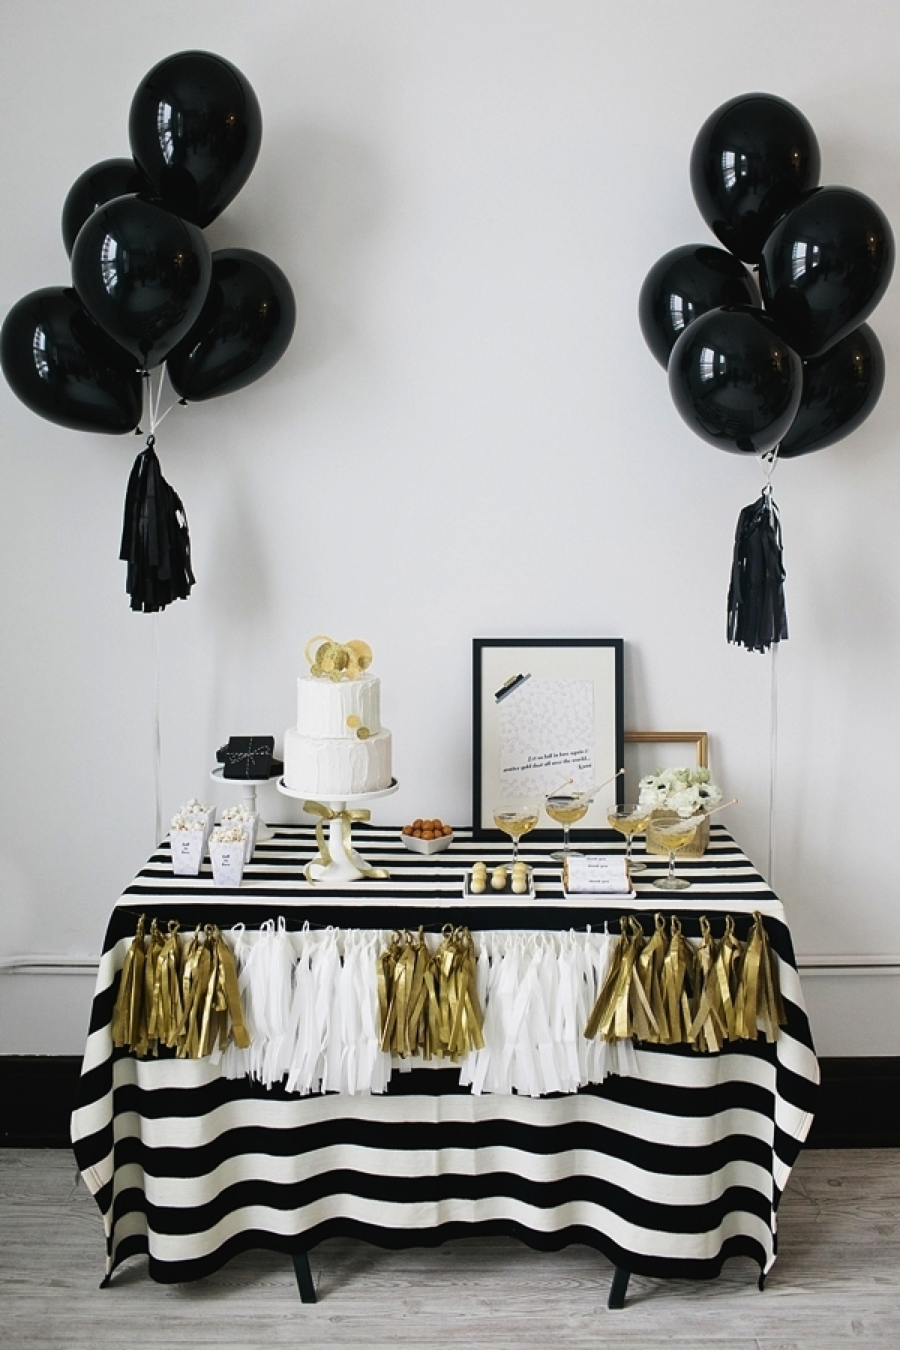 { Via } Gold, gold, and more gold! Create a dessert table with a black table cloth covered in gold streamers with black balloons, festive cake, snacks, and more